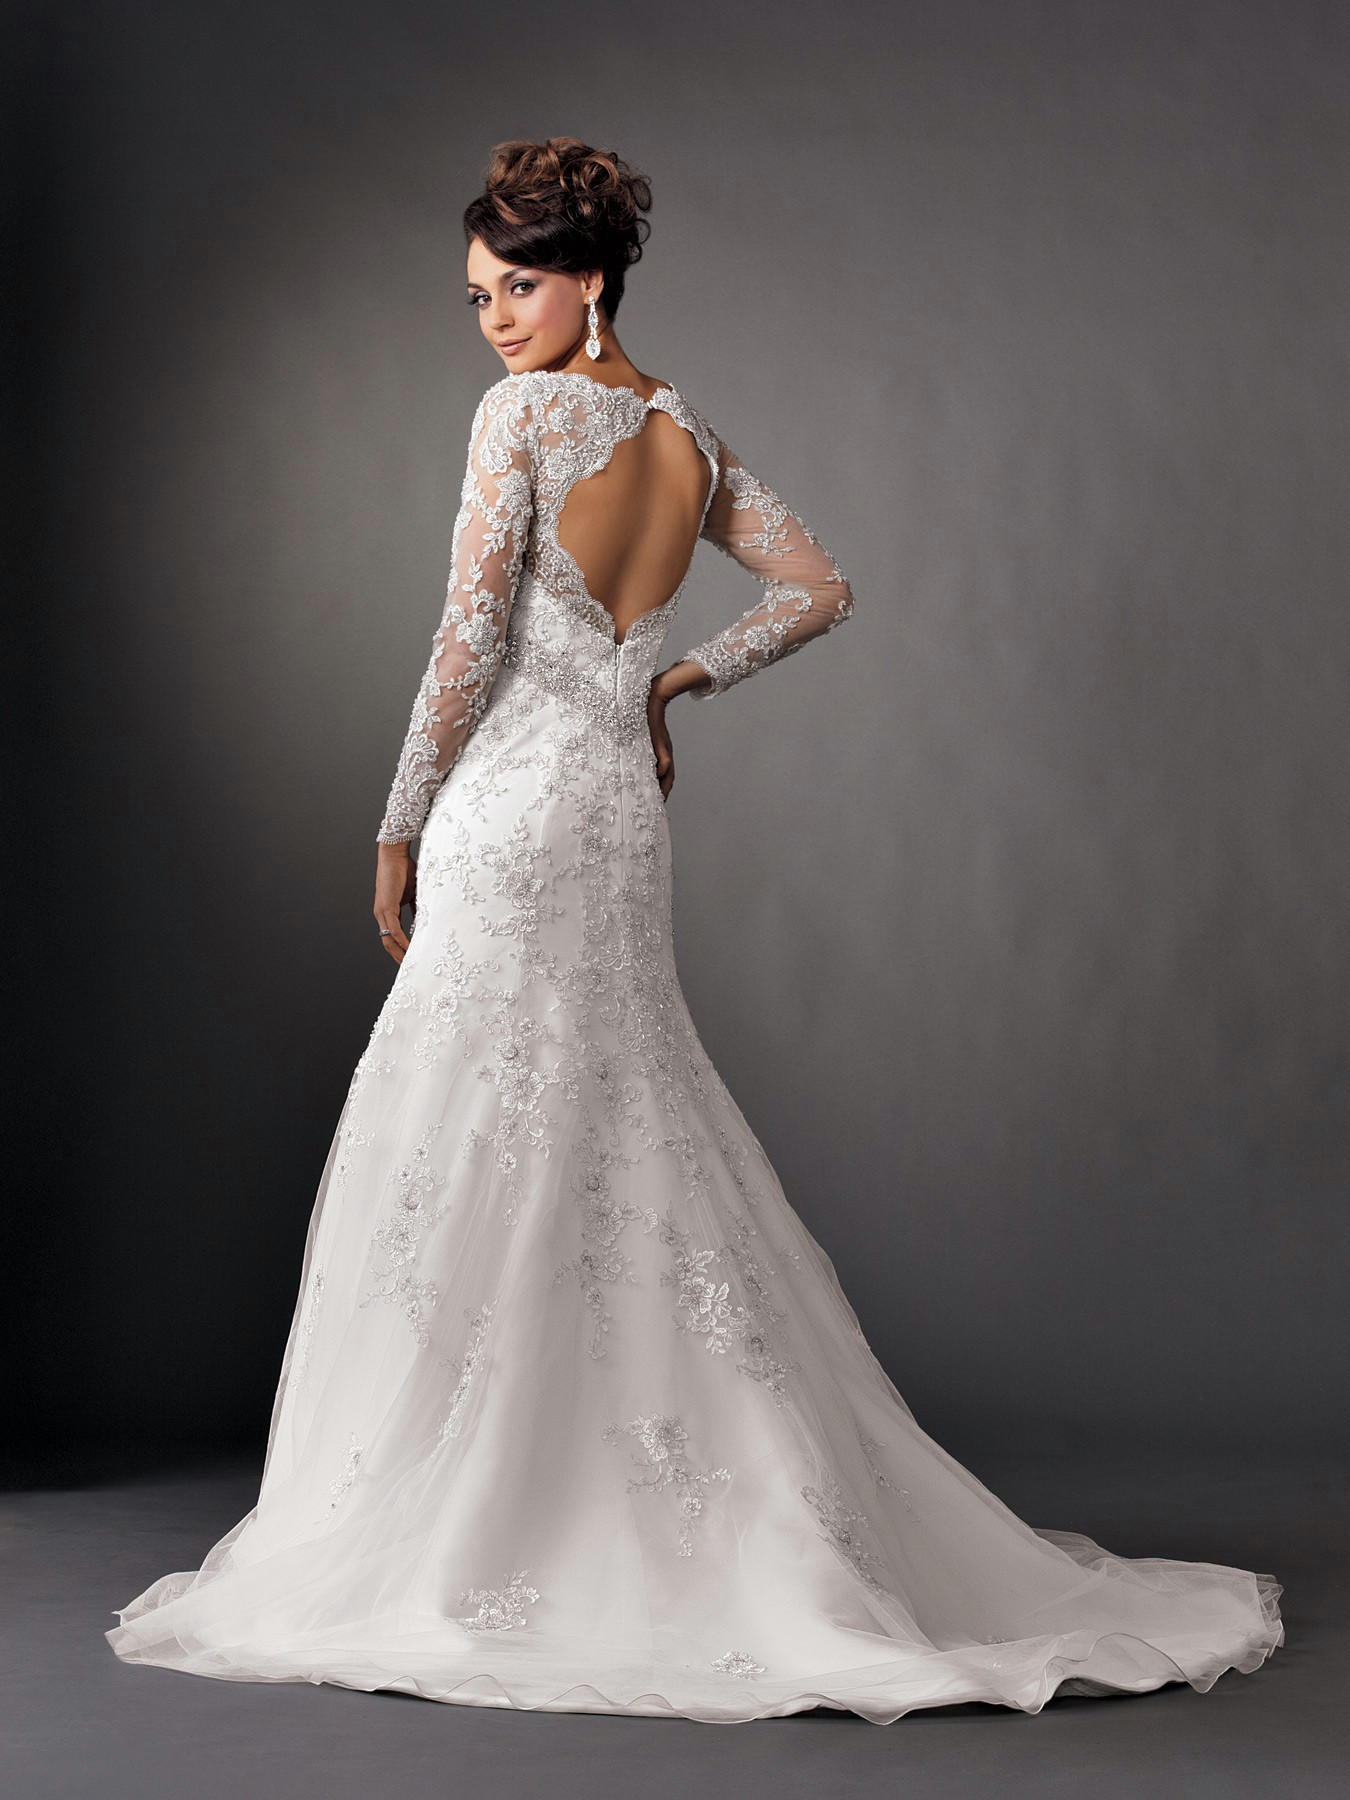 2014 2015 wedding dress trends lace sleeves dipped for Long sleeve white lace wedding dress